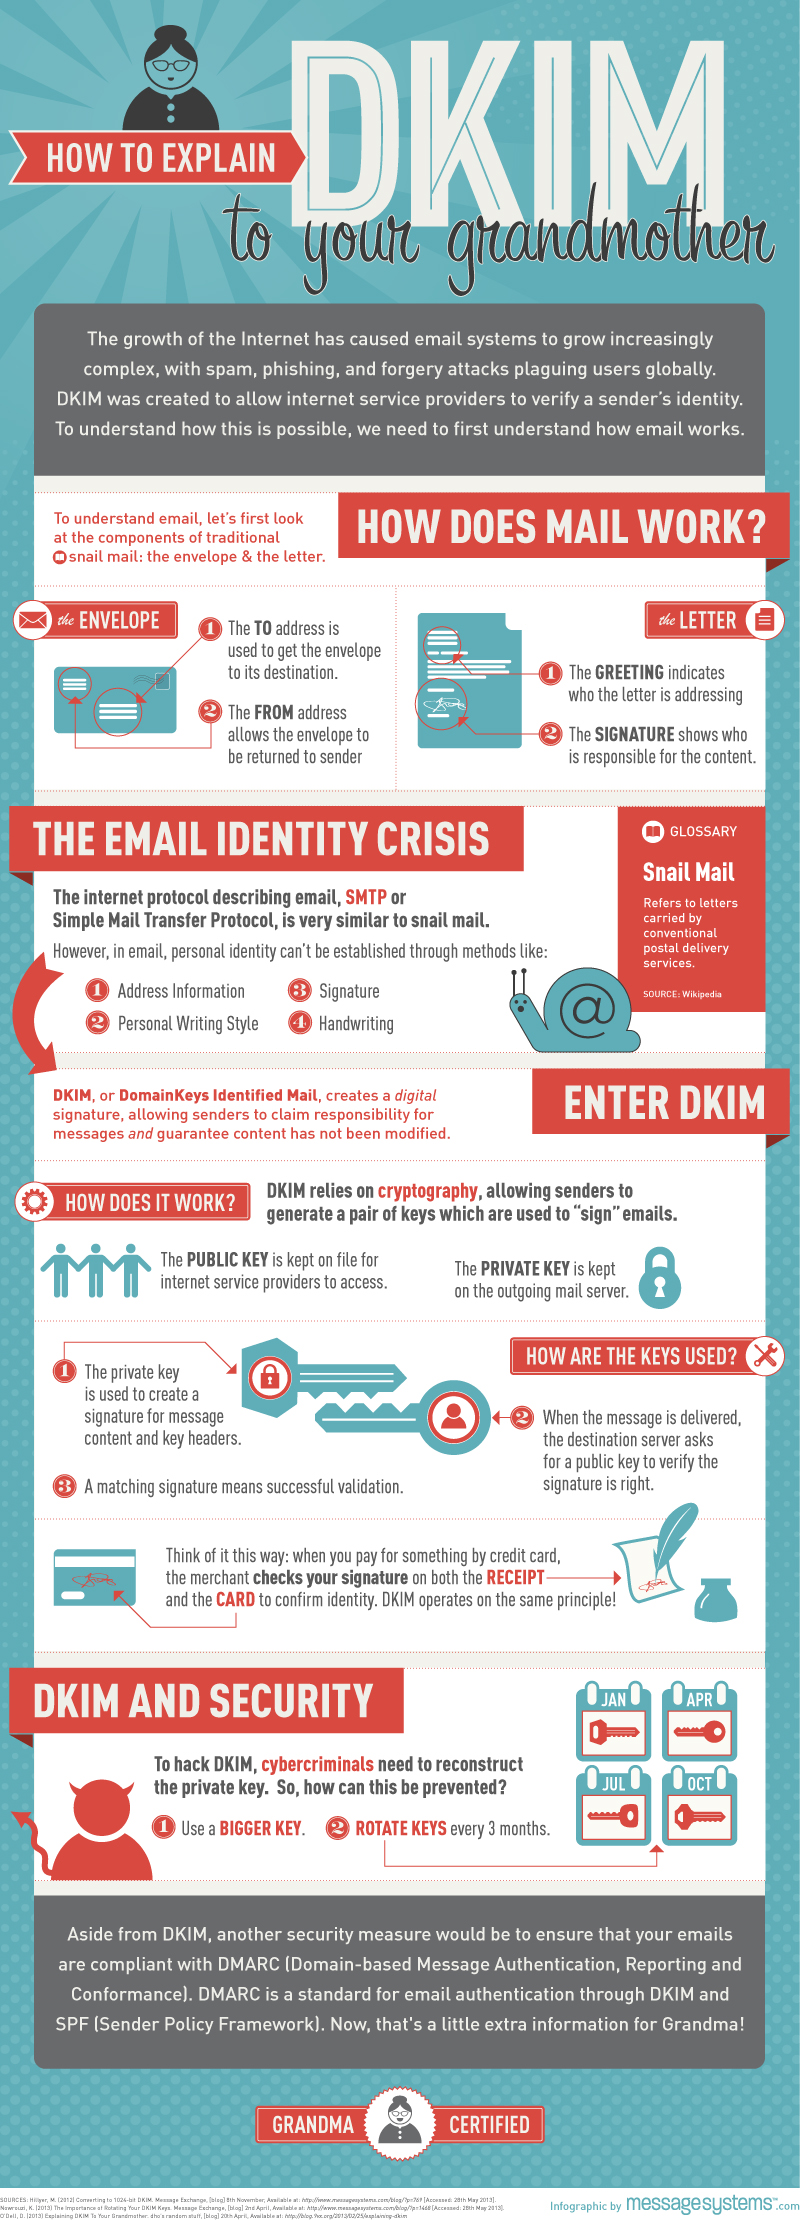 DKIM Infographic Explain to your Grandmother